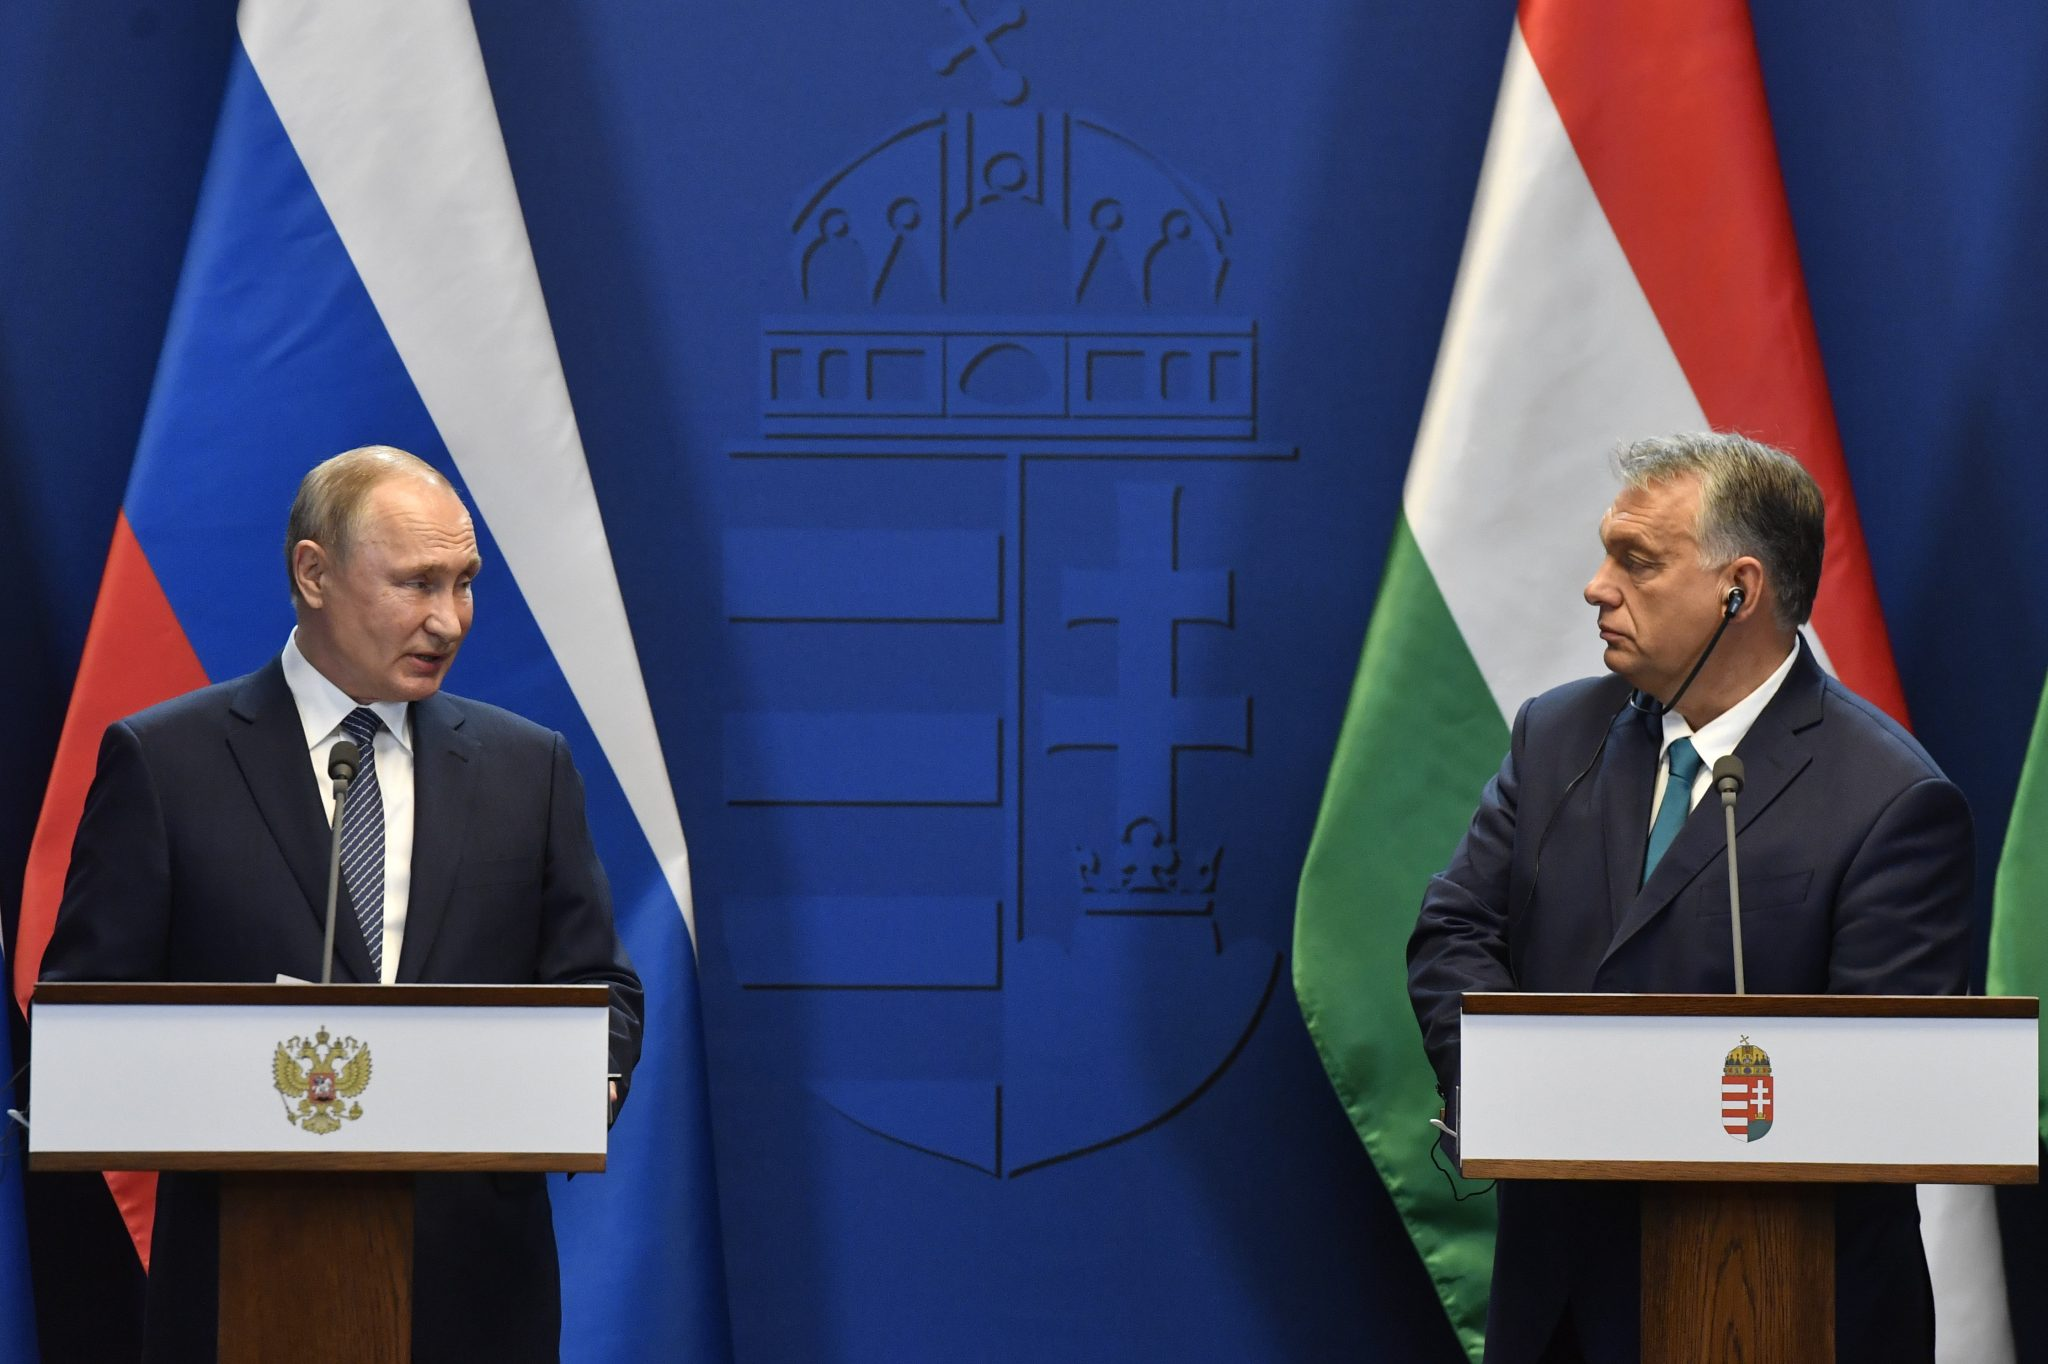 Putin: Orbán No Ordinary Leader, Stands Out in Europe